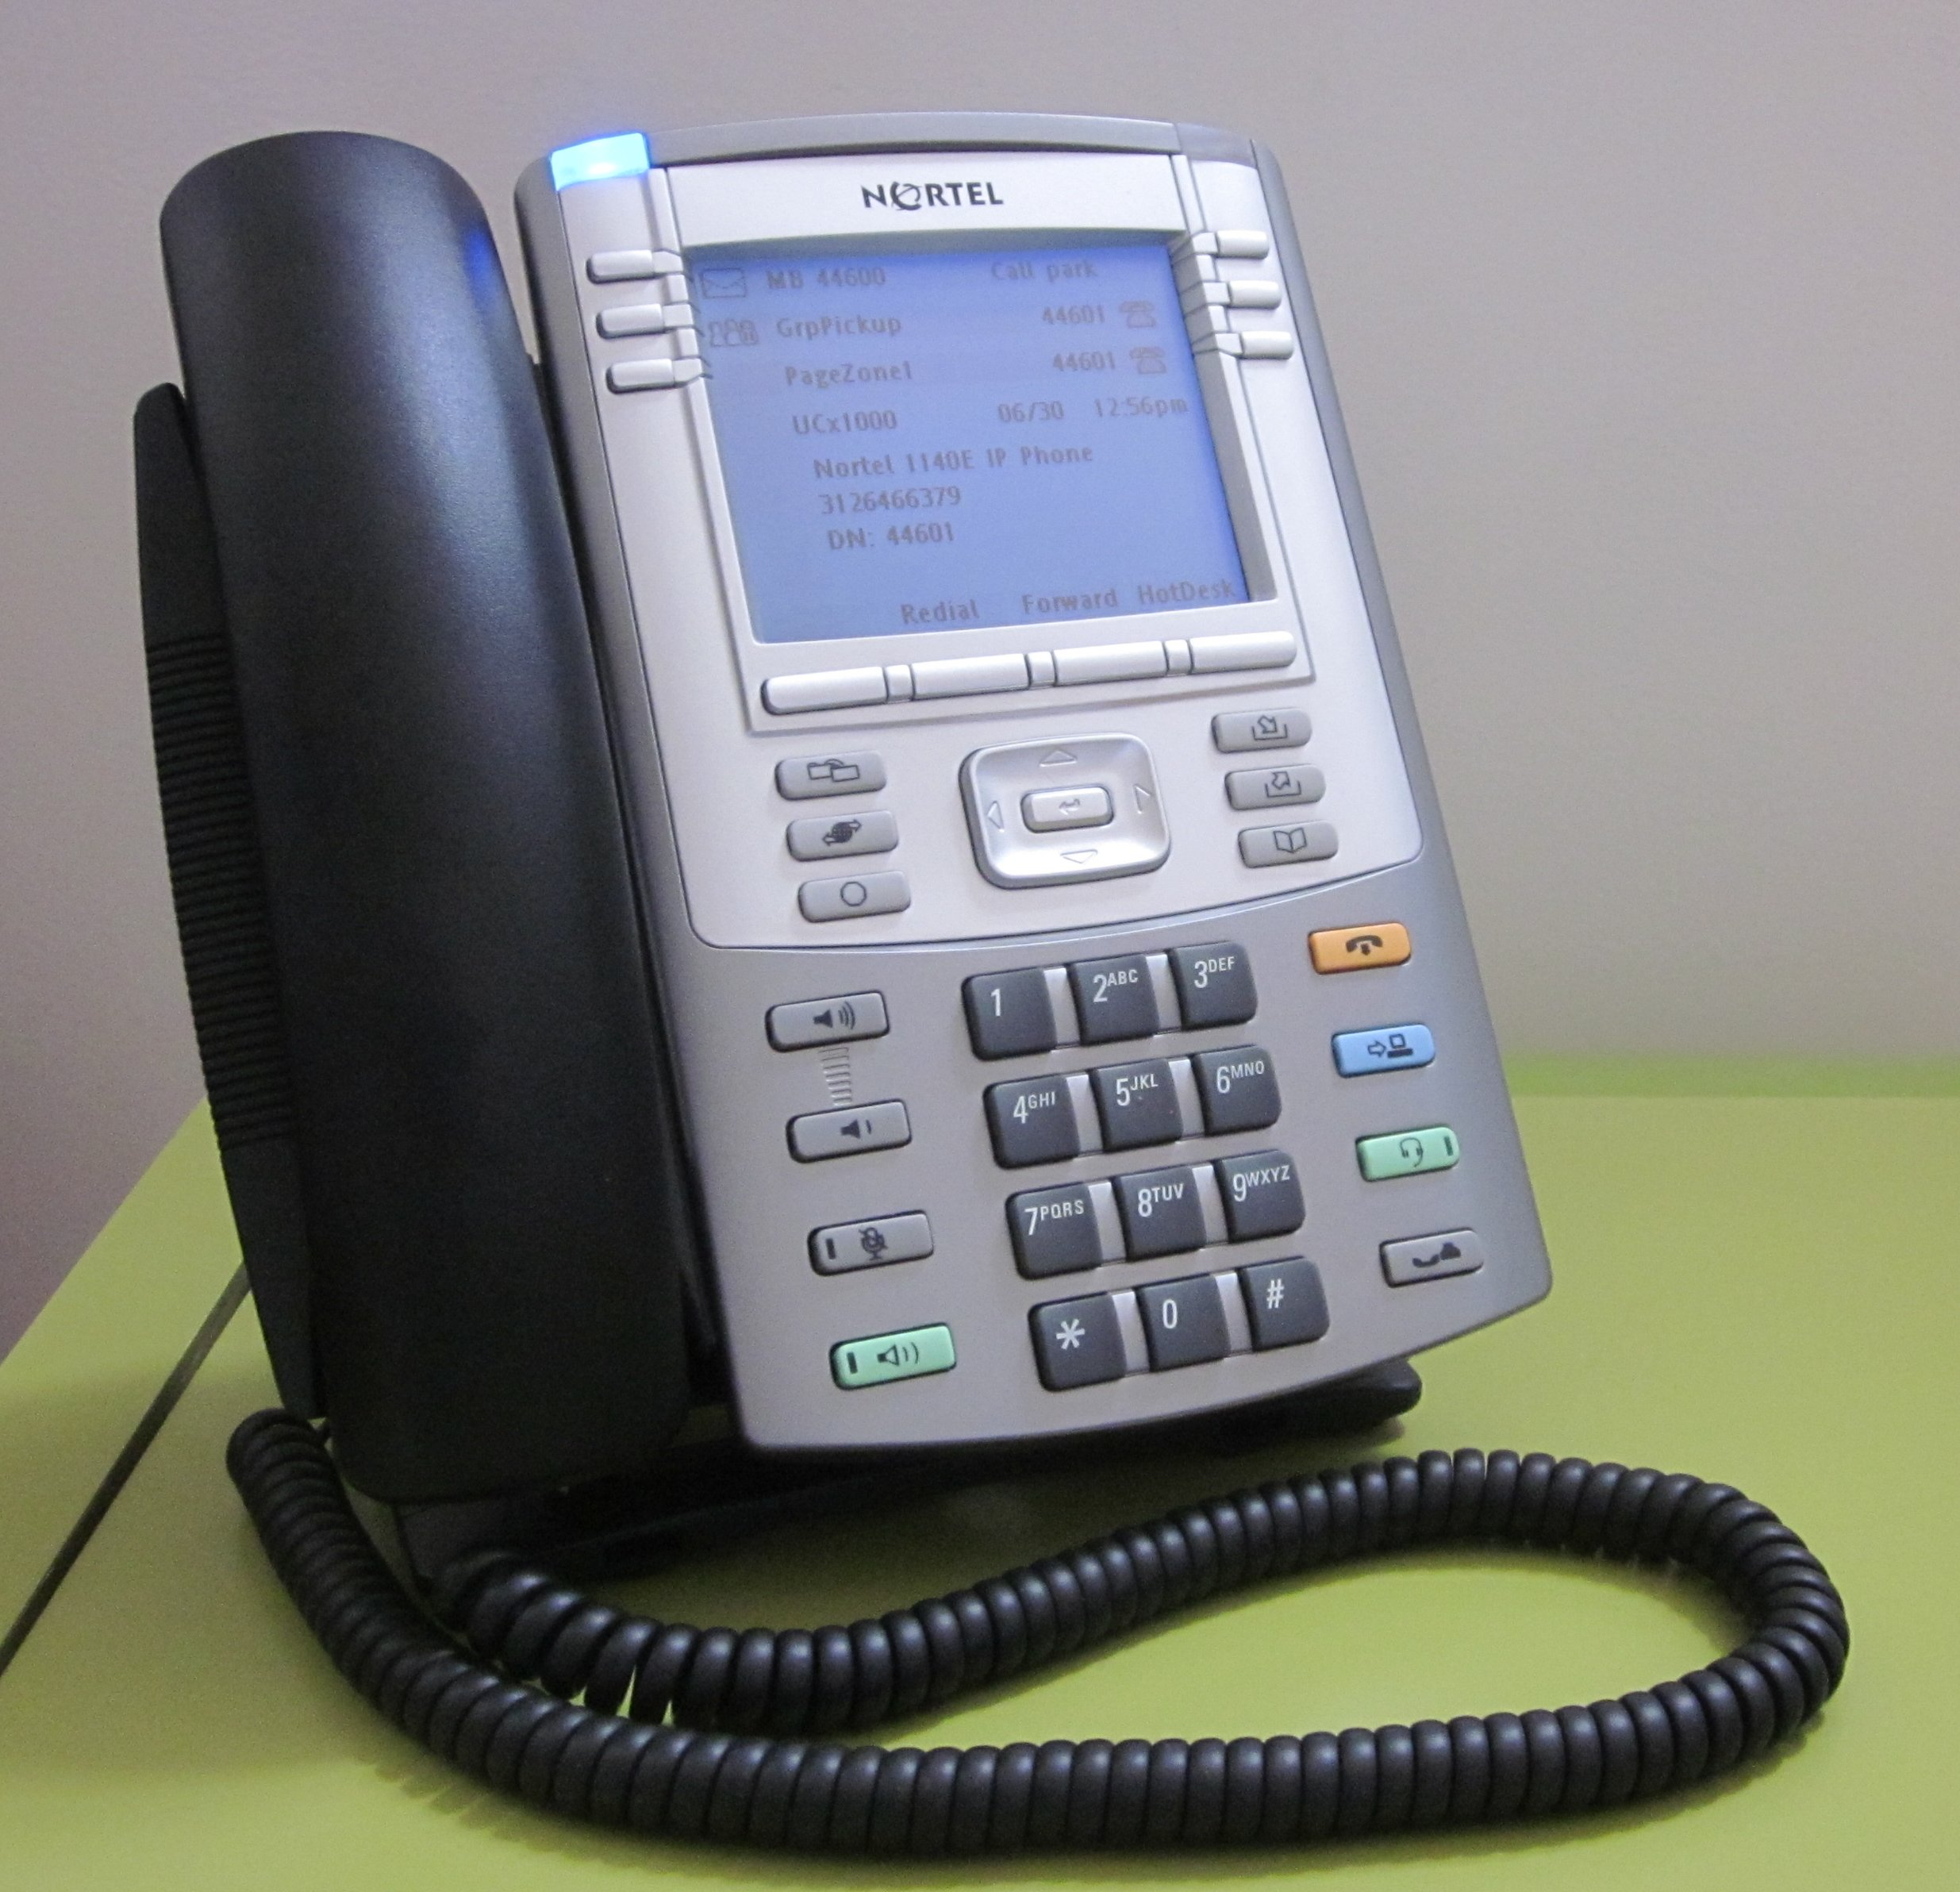 Desk Phone: Nortel Desk Phone